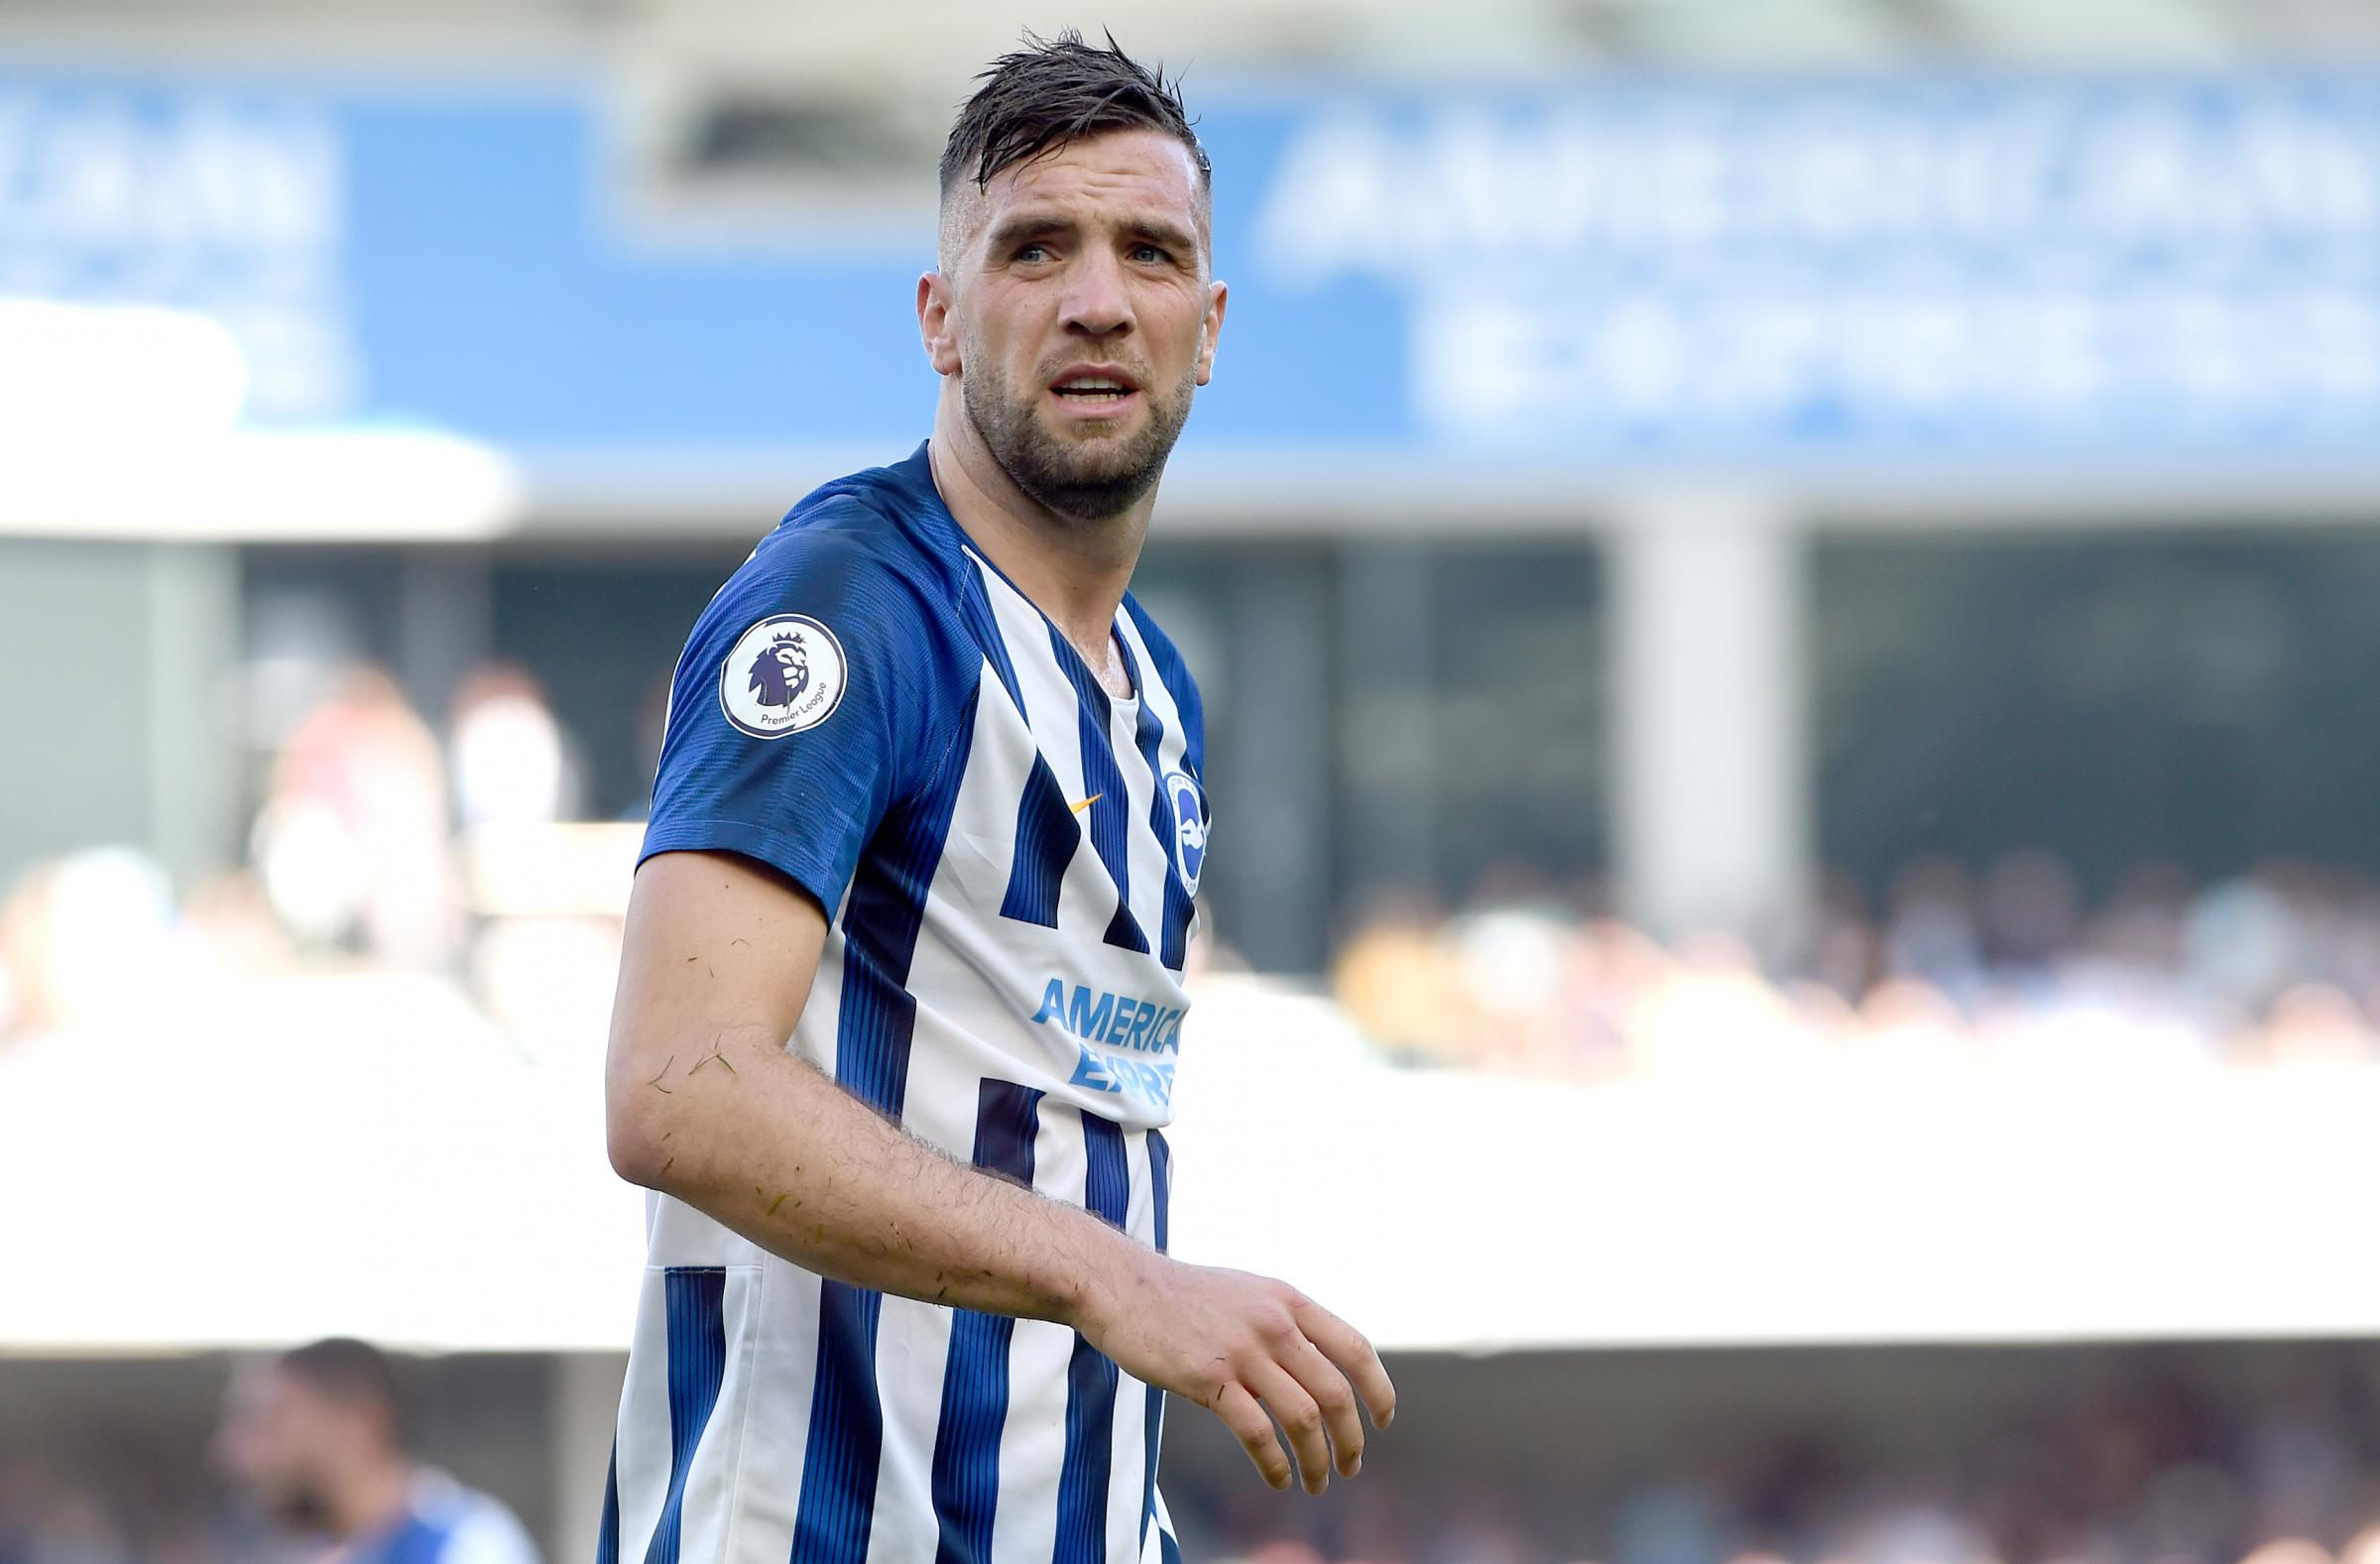 Brighton and Hove Albion's Shane Duffy thanks fans after father's funeral